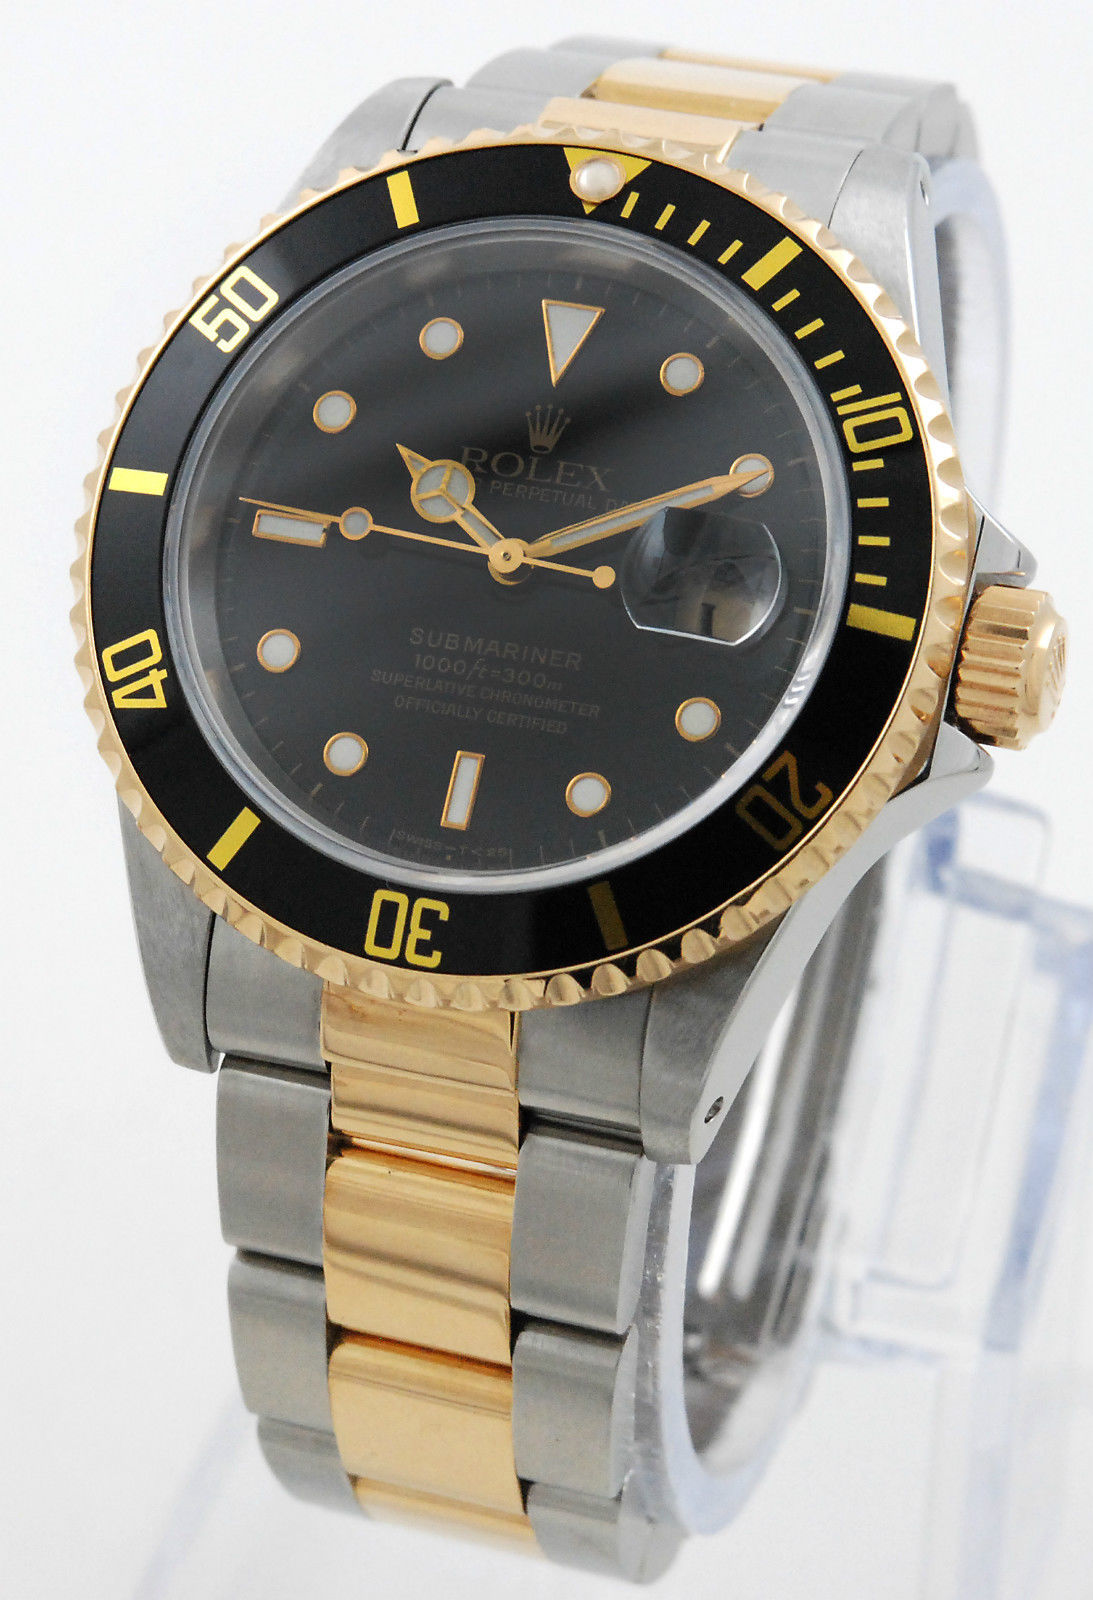 rolex submariner 16613 stahl gold mit box und papieren lc100. Black Bedroom Furniture Sets. Home Design Ideas